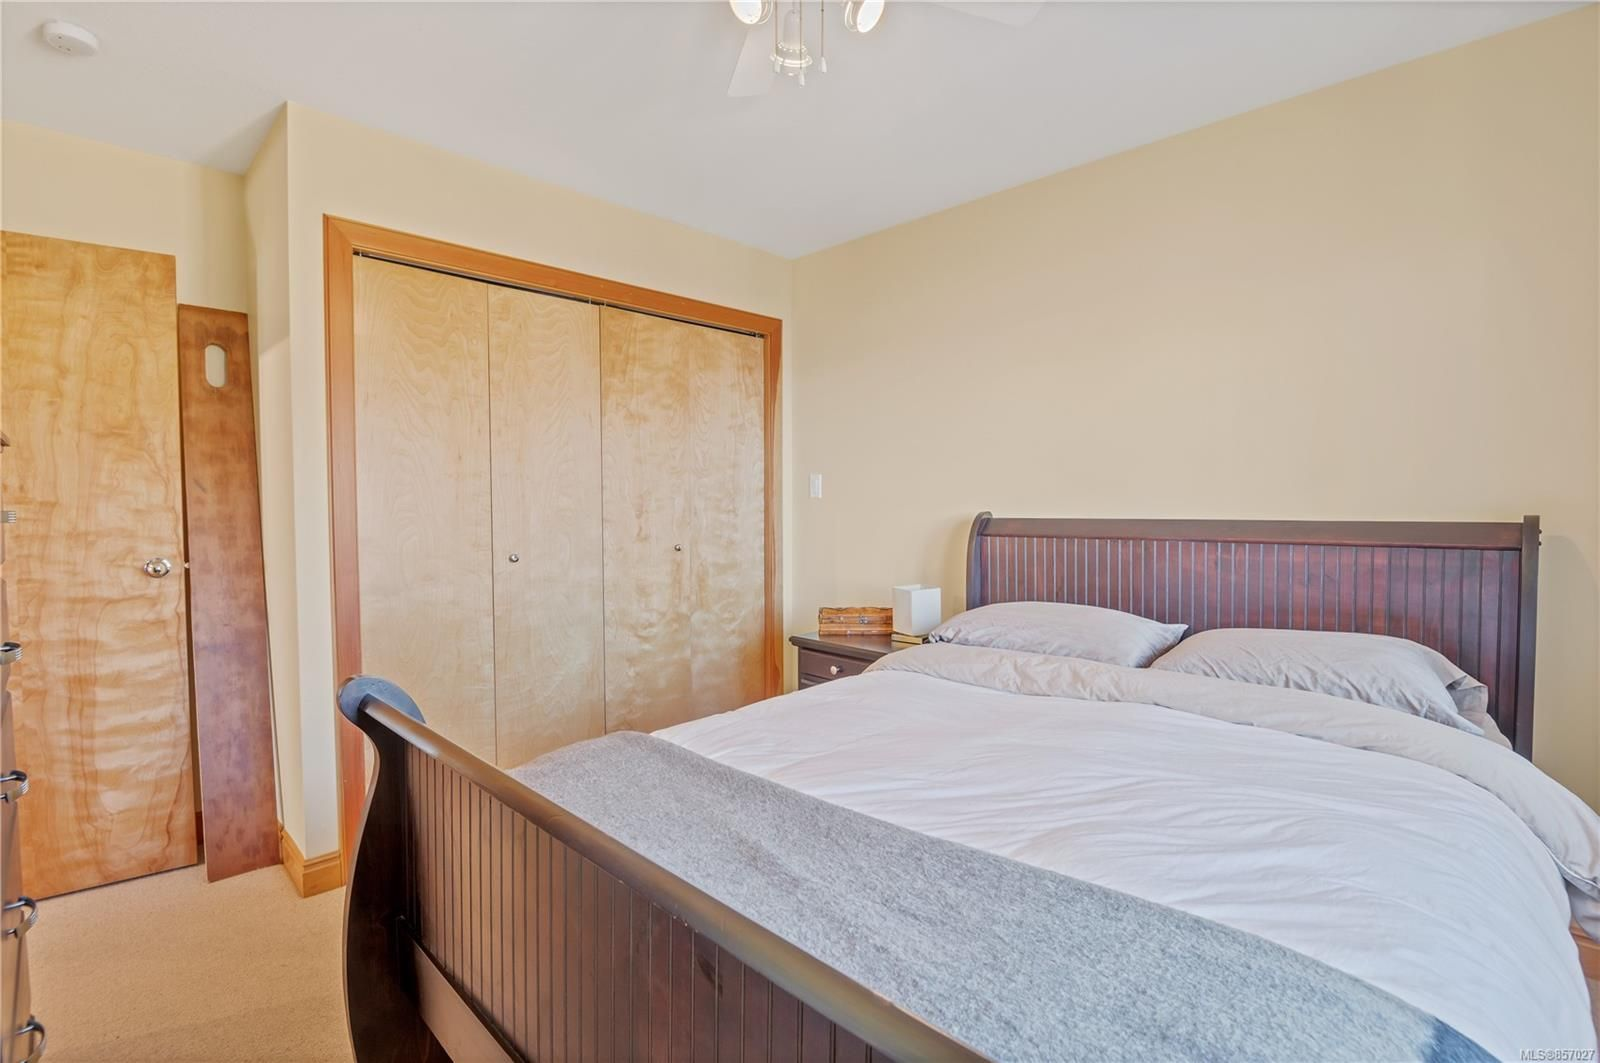 Photo 21: Photos: 253 S Alder St in : CR Campbell River South House for sale (Campbell River)  : MLS®# 857027